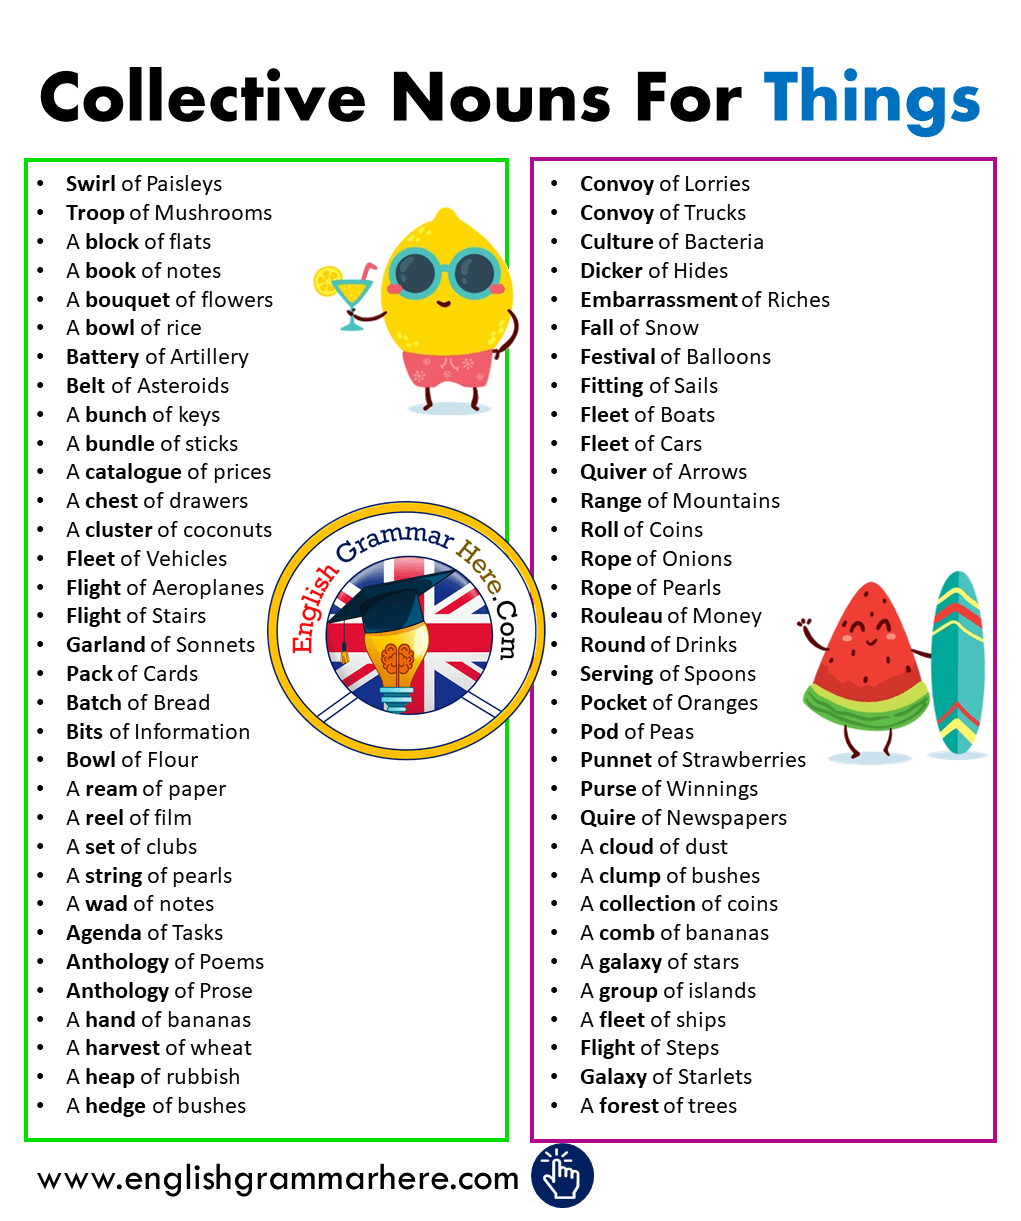 Collective Nouns For Things in English